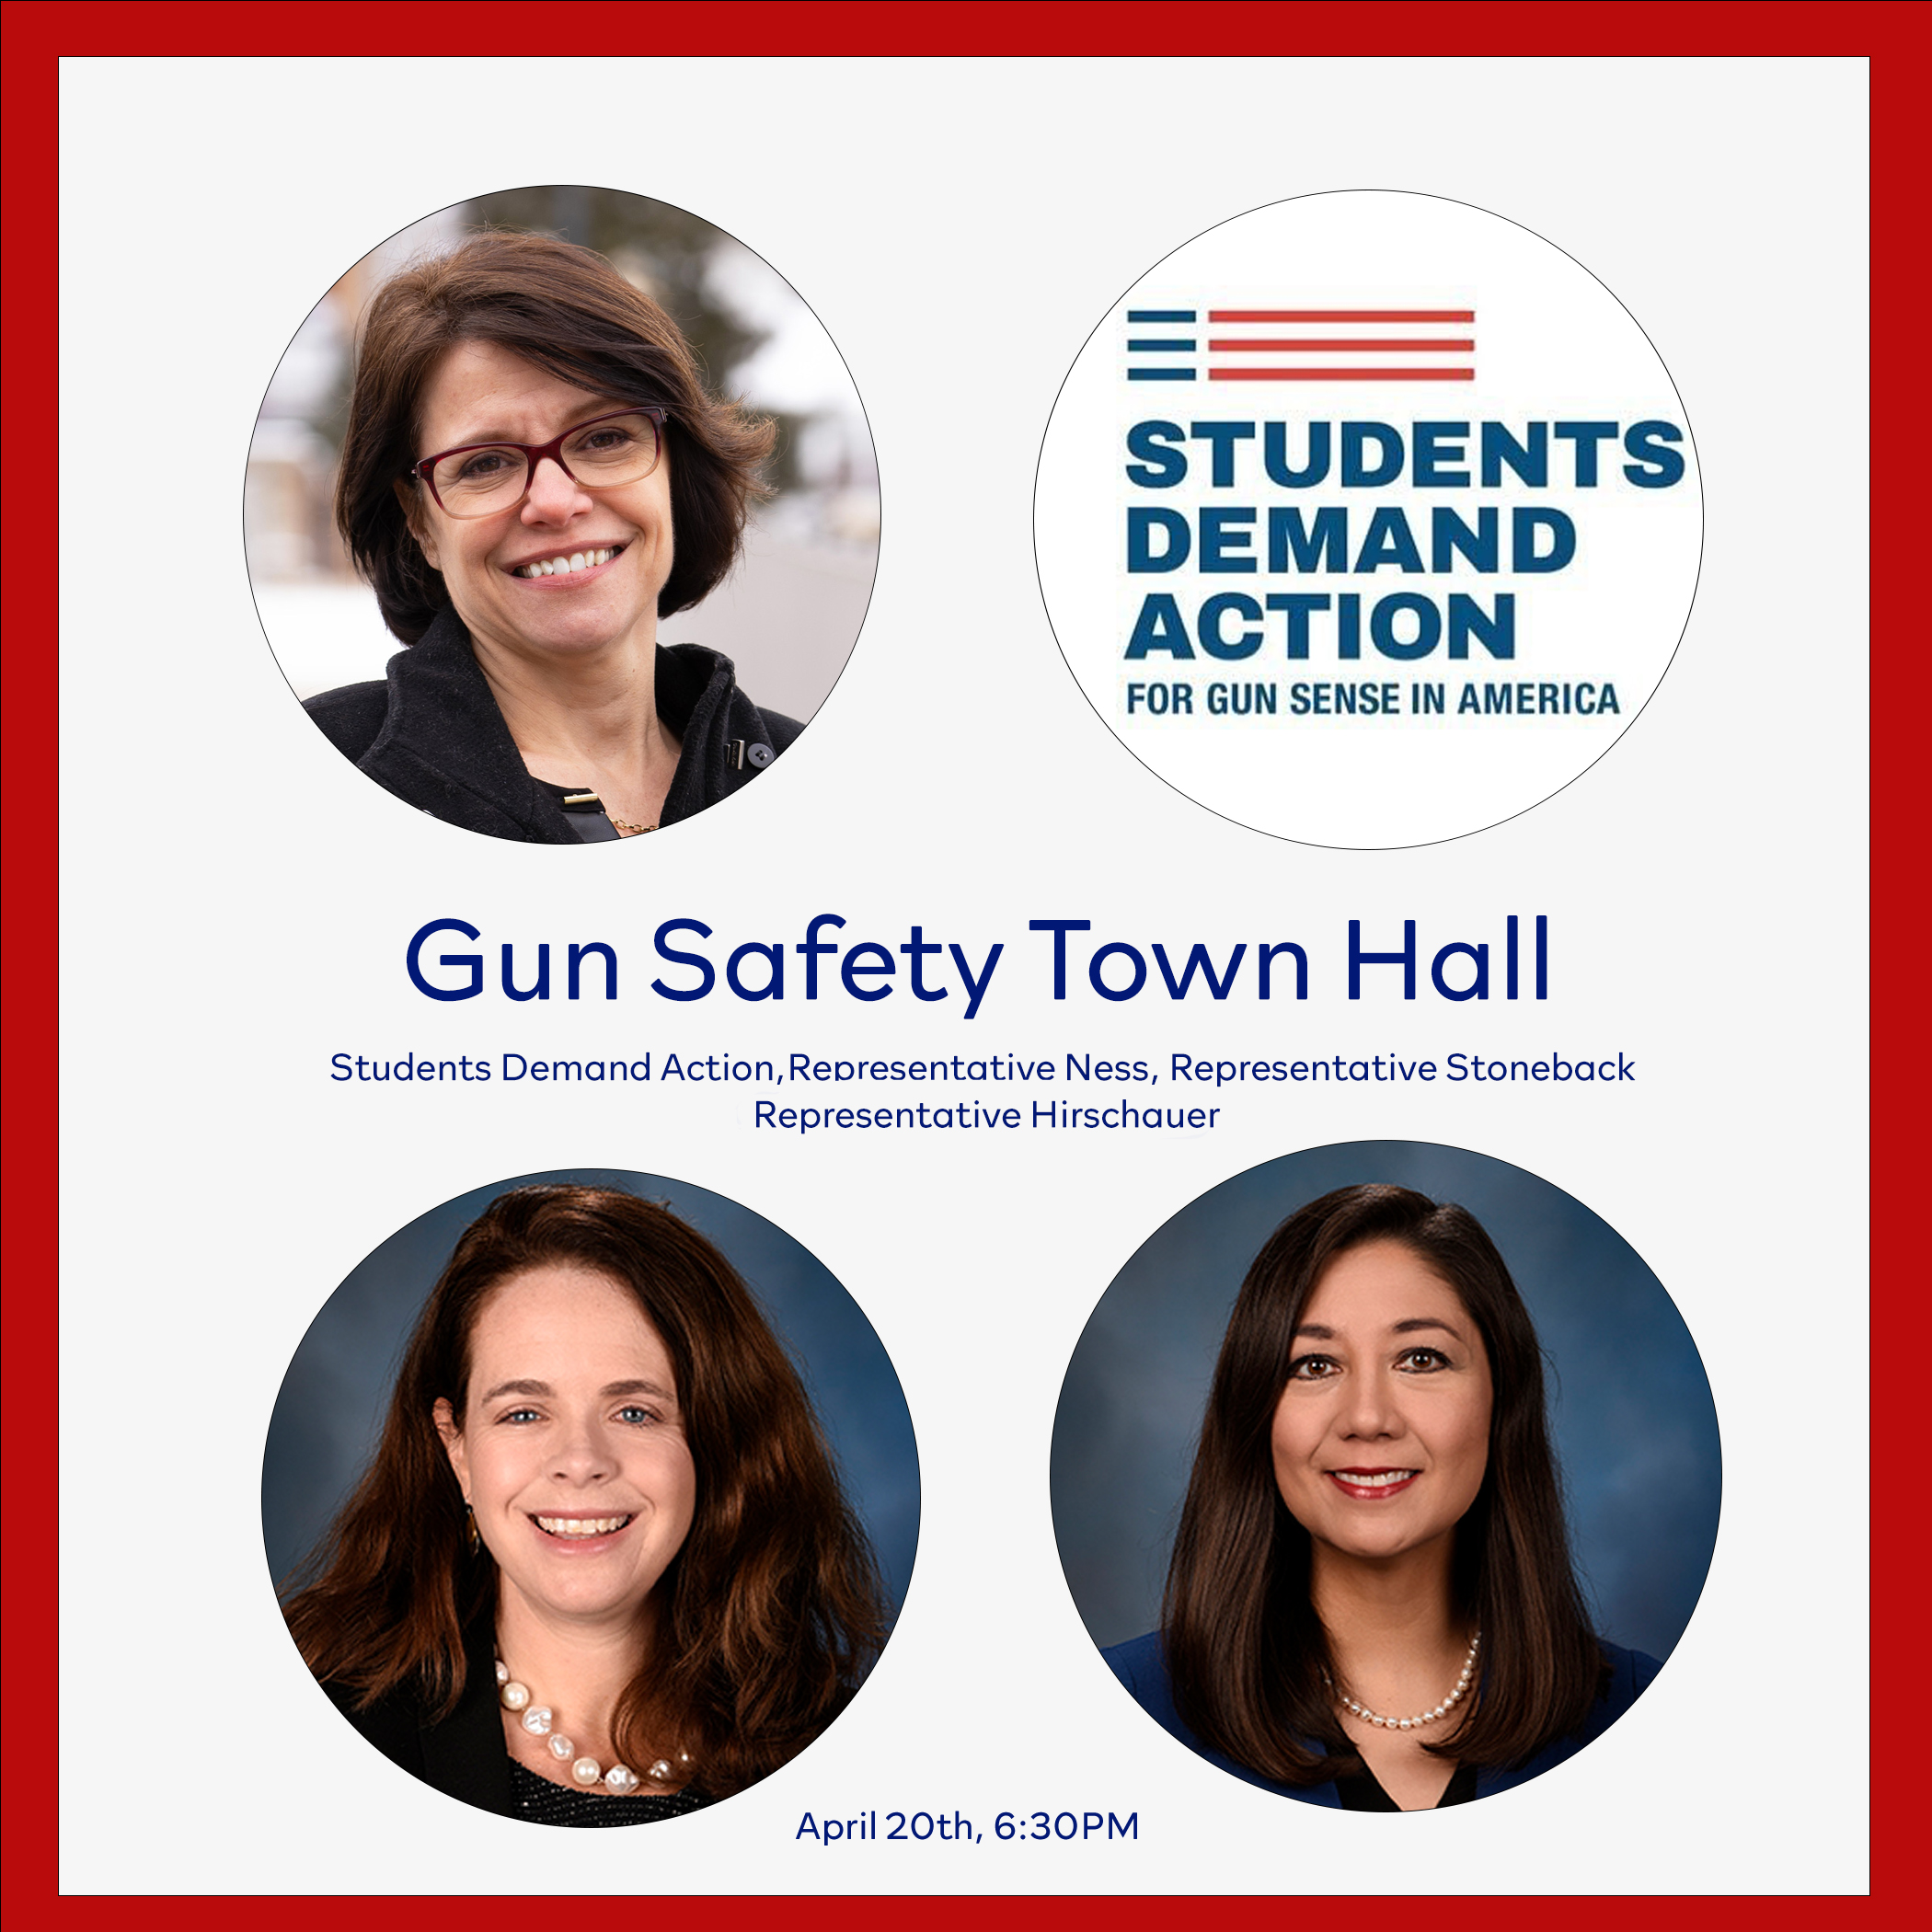 Images of Reps Ness, Stoneback, & Hirschauer, Students Demand Action logo, and the words 'Gun Safety Town Hall'